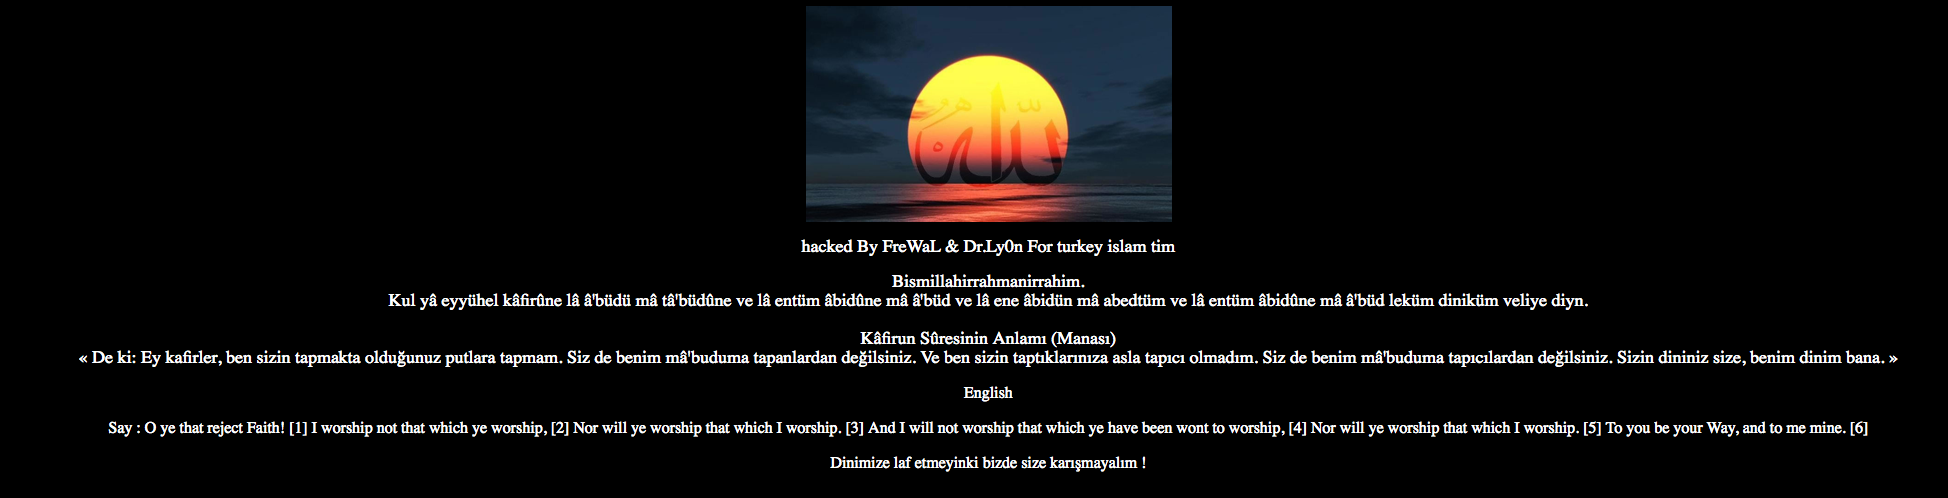 Dawkins Foundation site hacked by Muslims « Why Evolution Is True